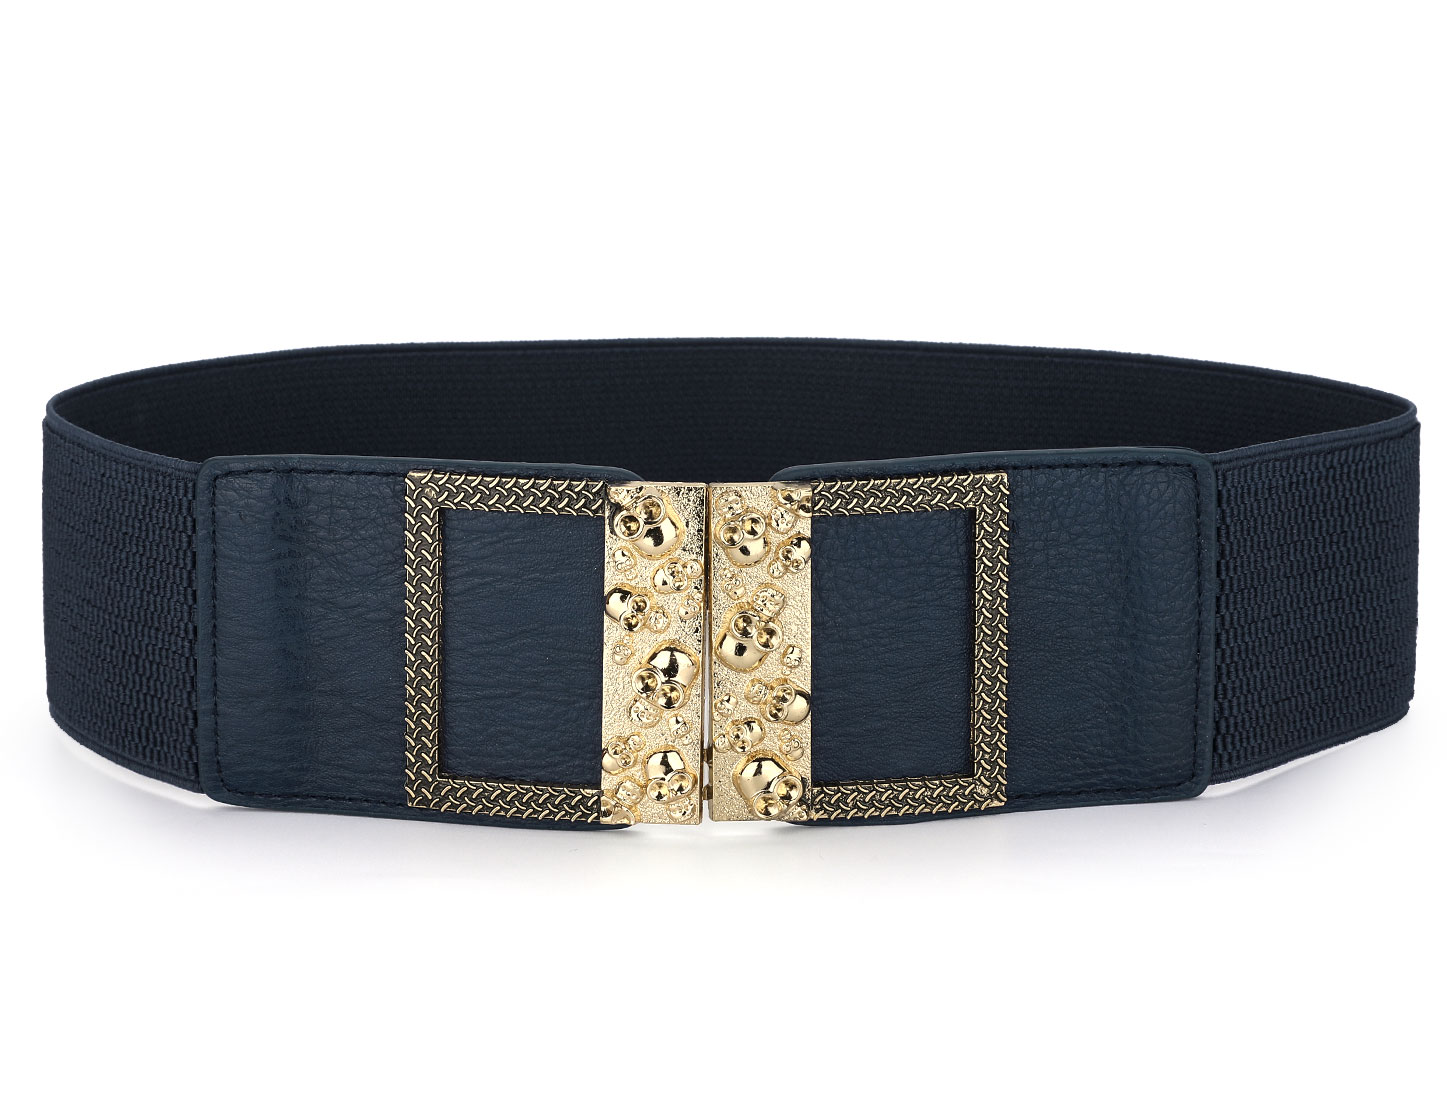 Gold Tone Skull Carved Interlocking Buckle 6cm Width Elastic Cinch Waist Belt Dark Blue